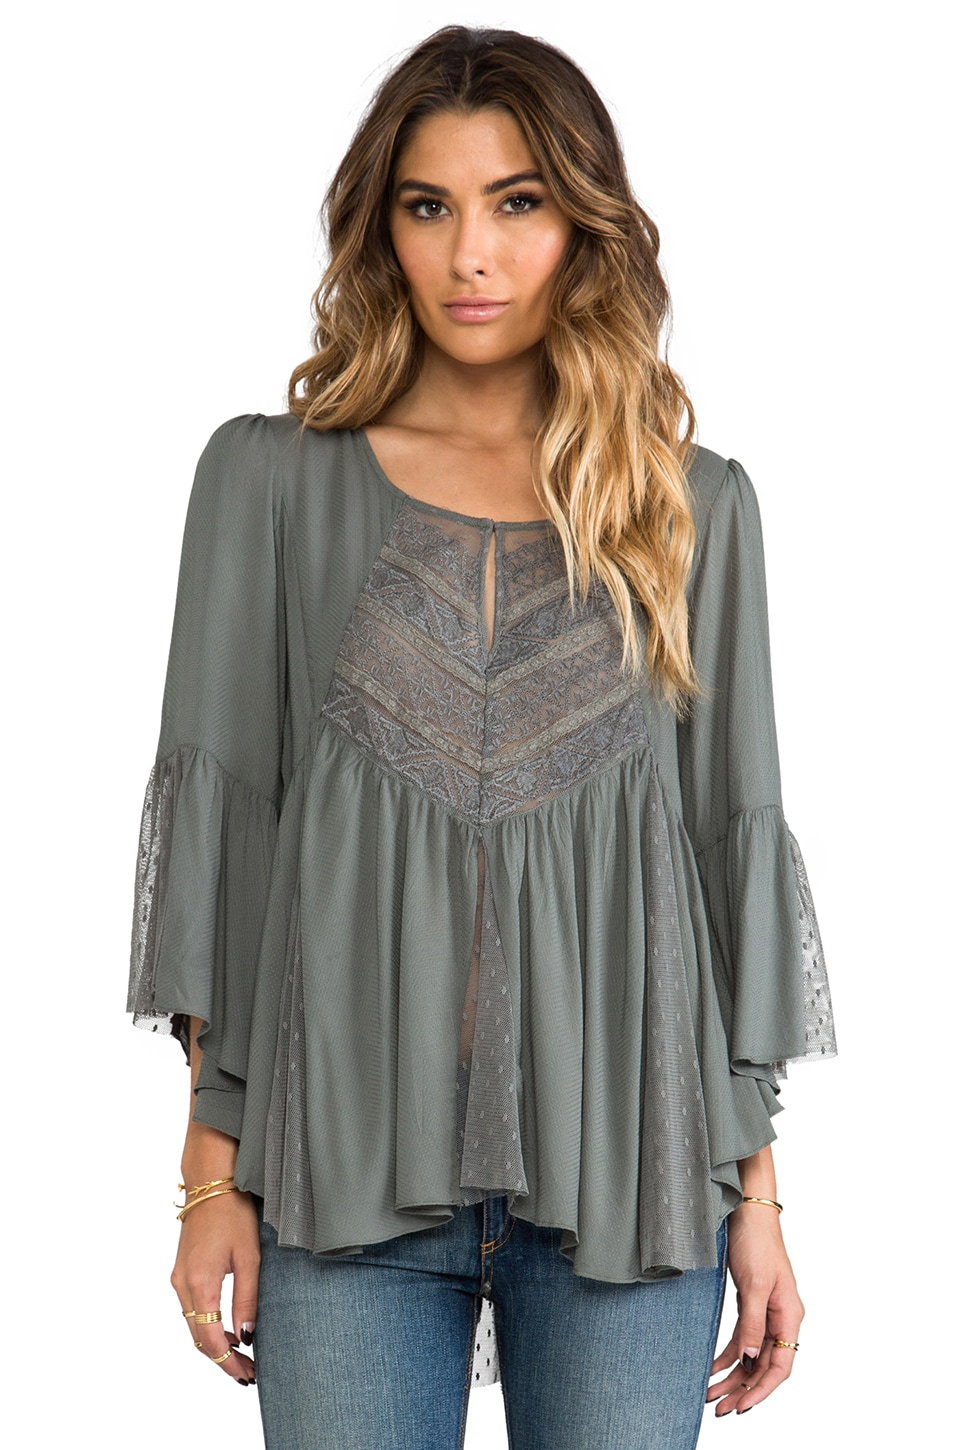 Free People Sweeter Emotion Top in Shark